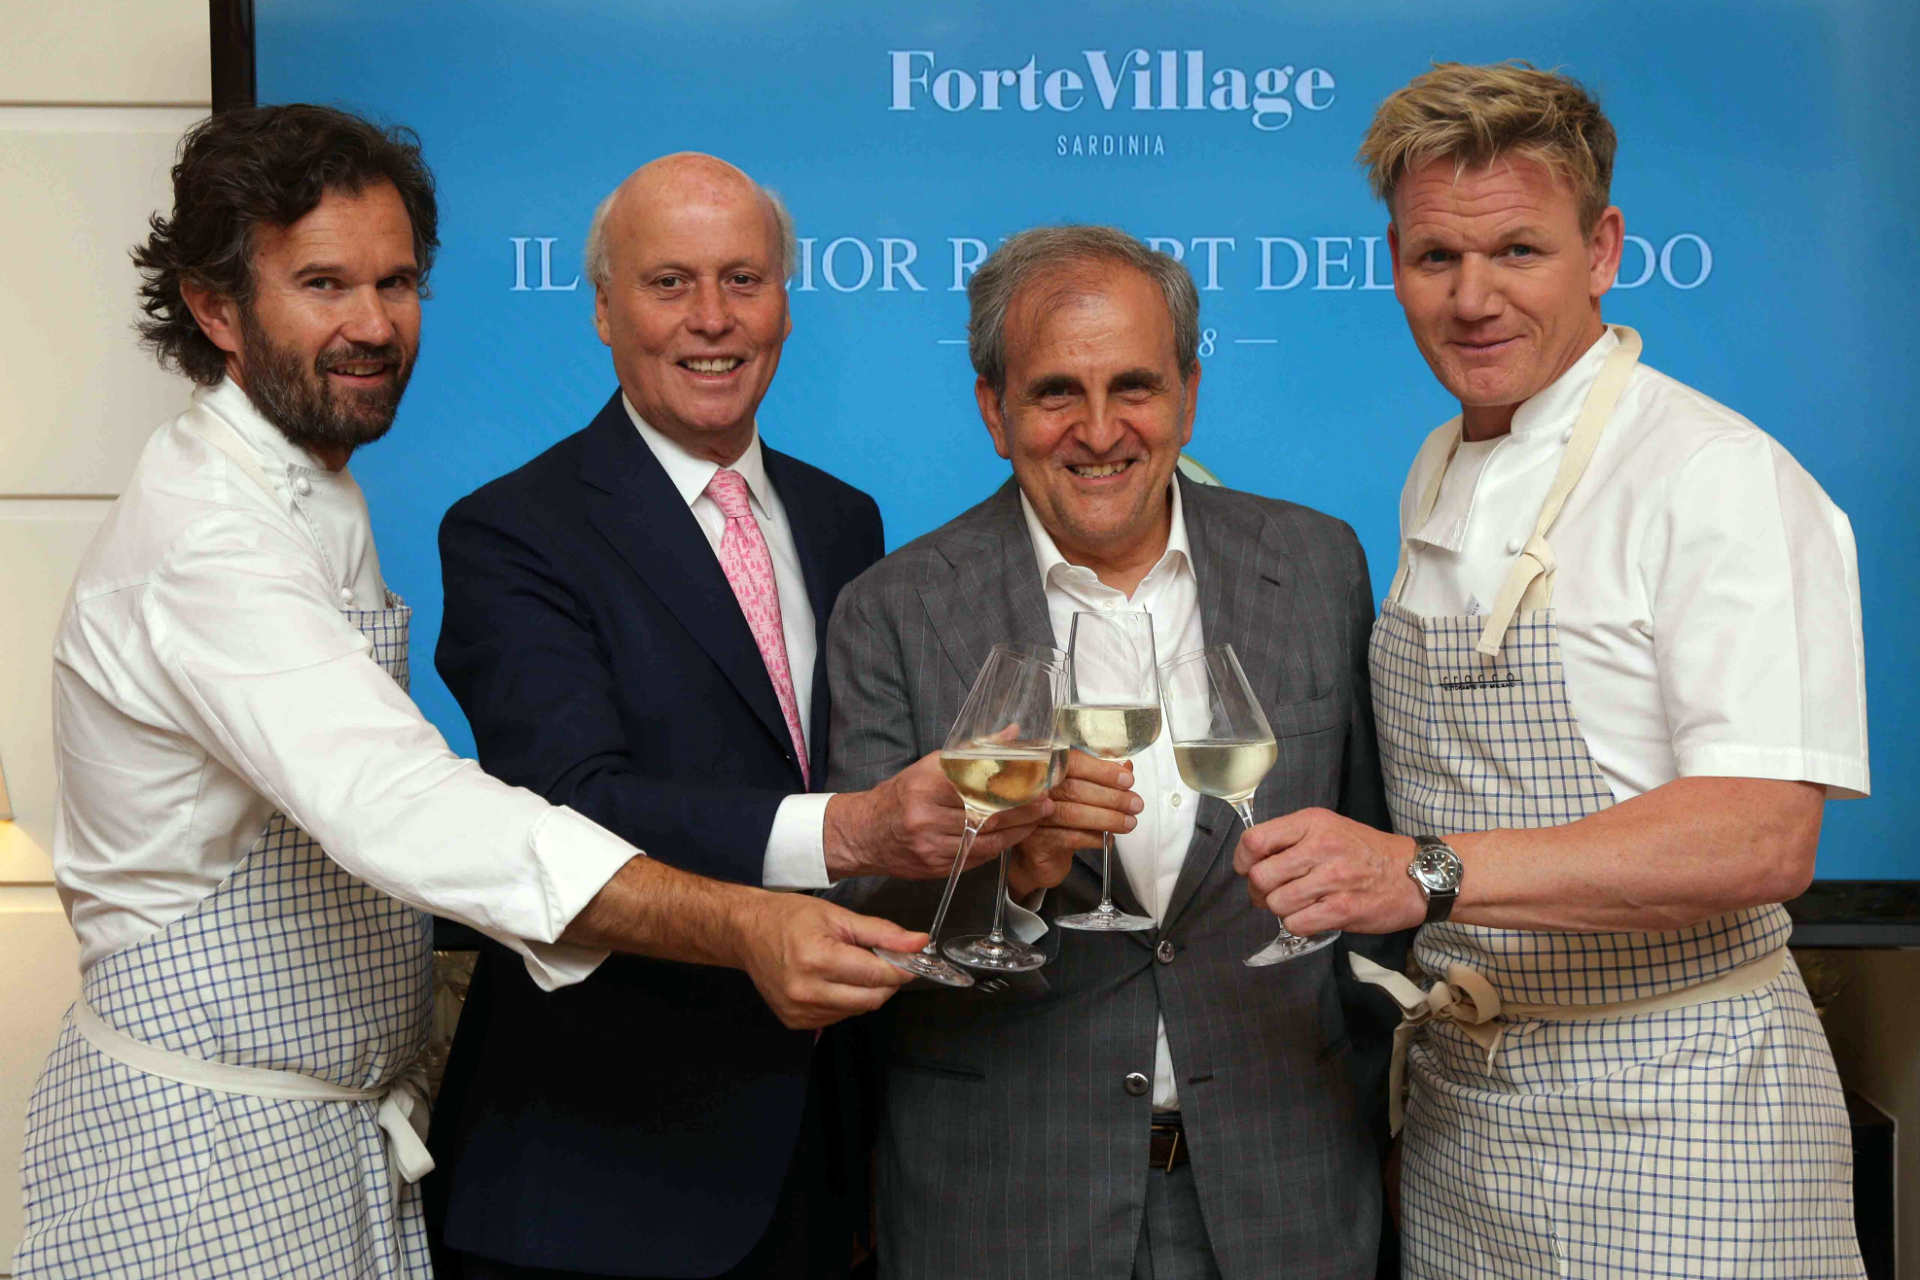 CHEFS CRACCO AND GORDON RAMSEY TOGETHER FOR FORTE VILLAGE